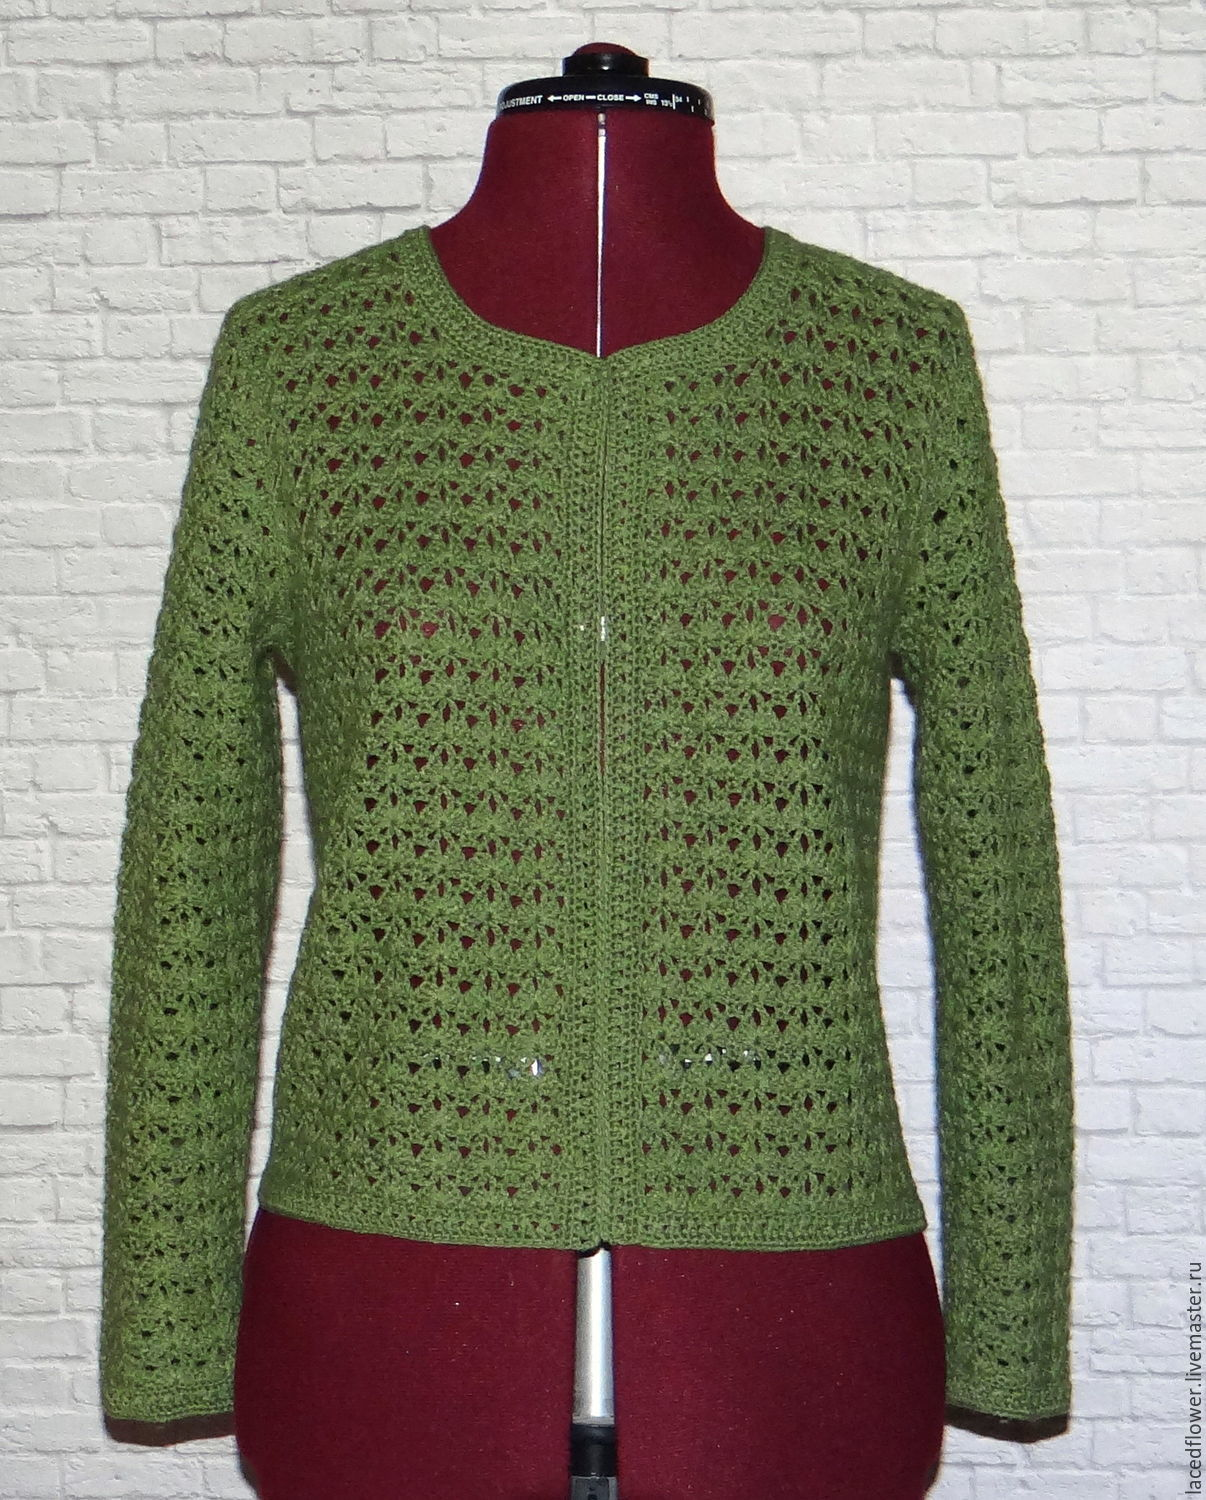 Jacket `Green olive` crocheted.100% handmade. Actual color, classic design.